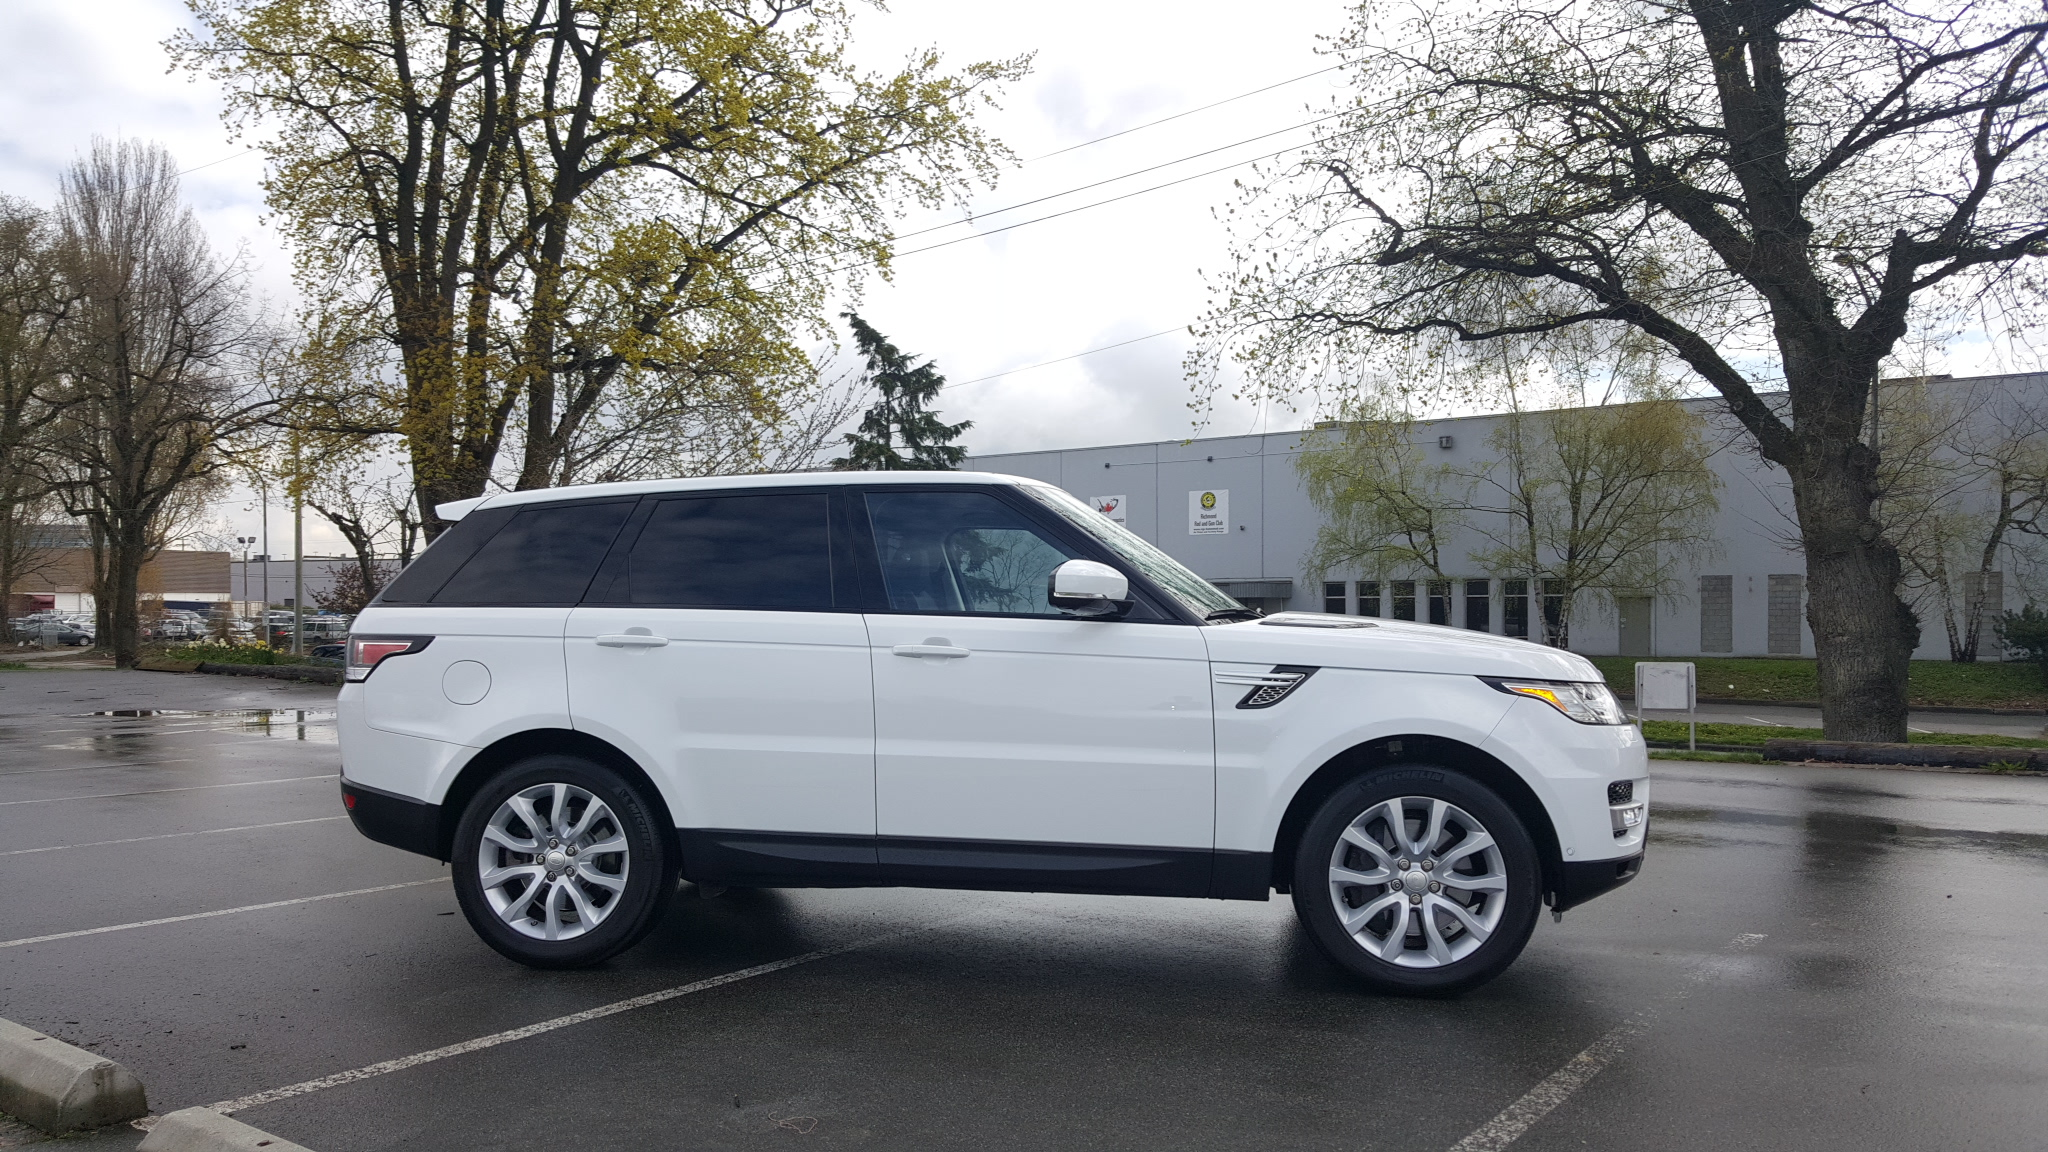 pricing or but range size lease land rover same different the cheap evoque and vs velar landrover